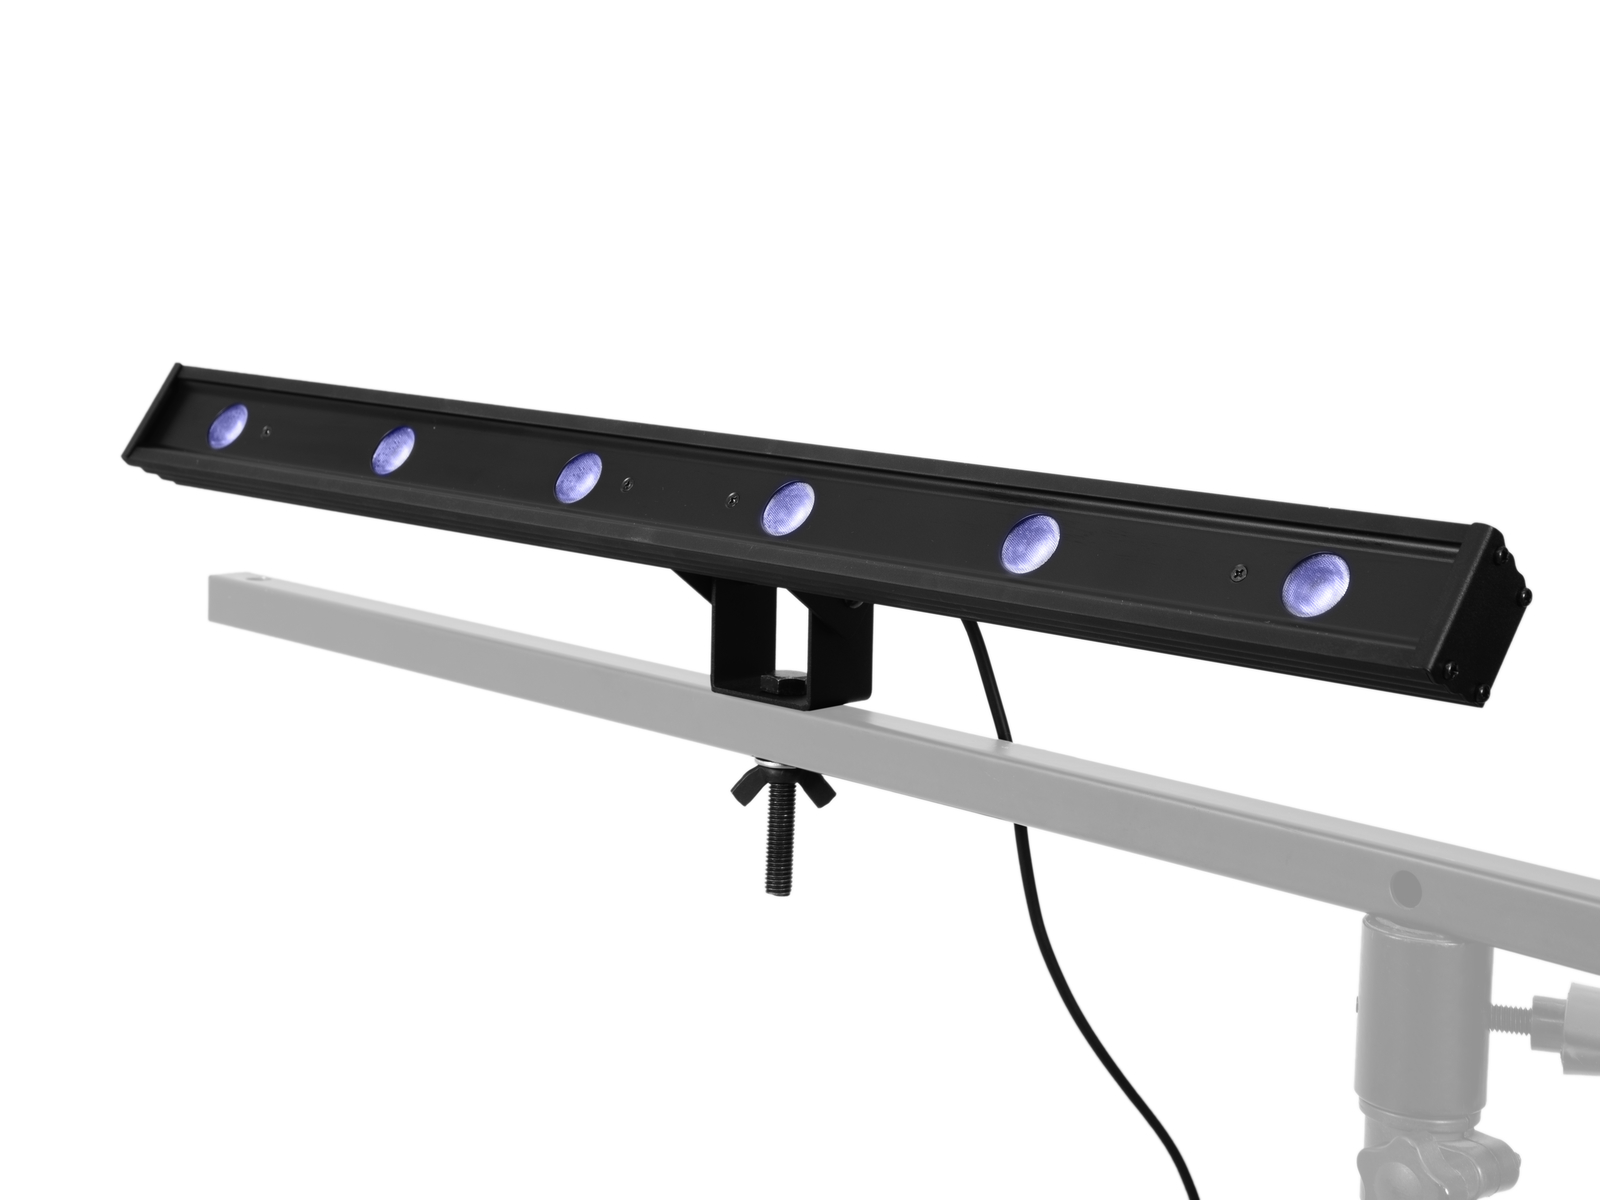 Bar, 6-led UV Light Ultraviolet ANTARI DarkFX Strip 510